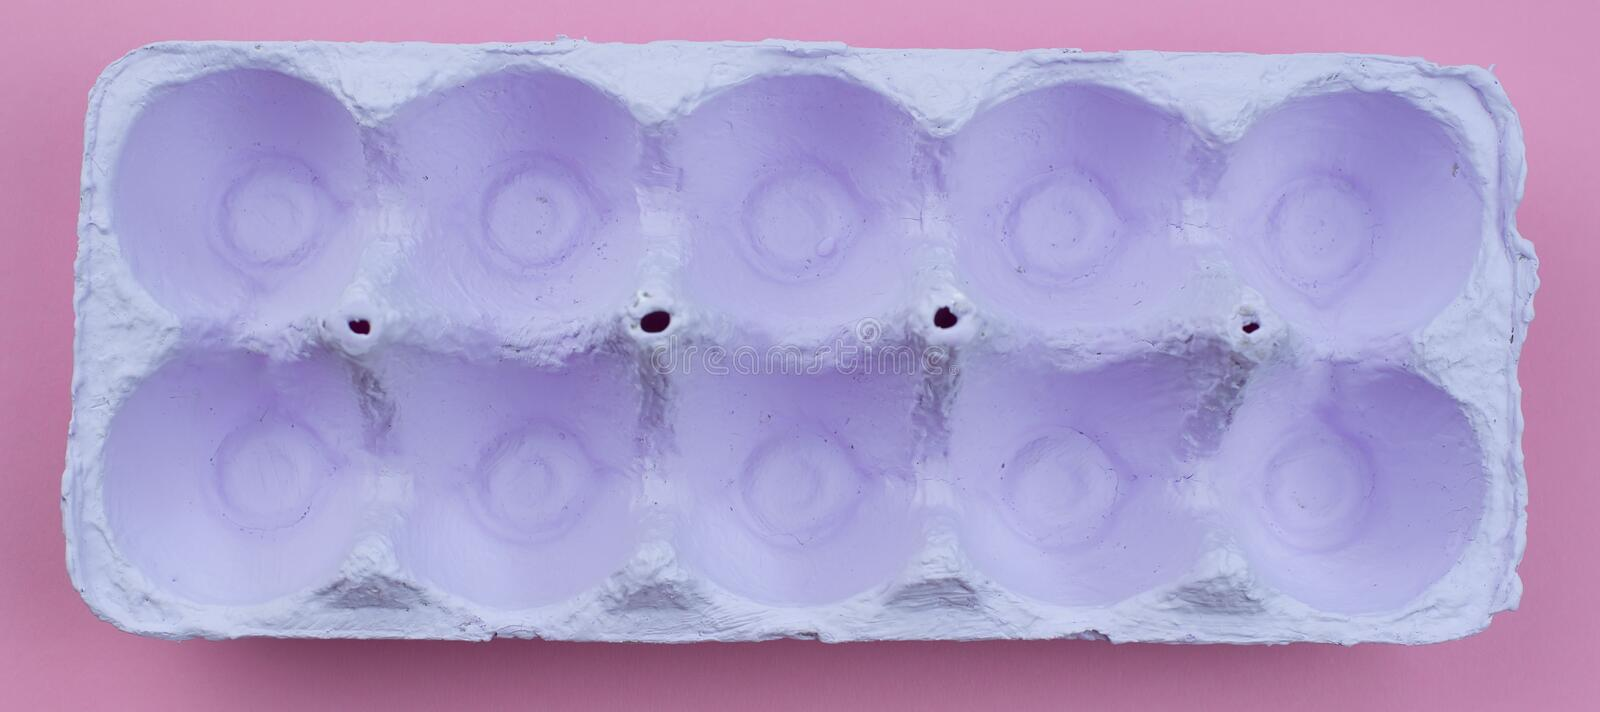 Banner Stand for eggs purple on a pink background. stock images